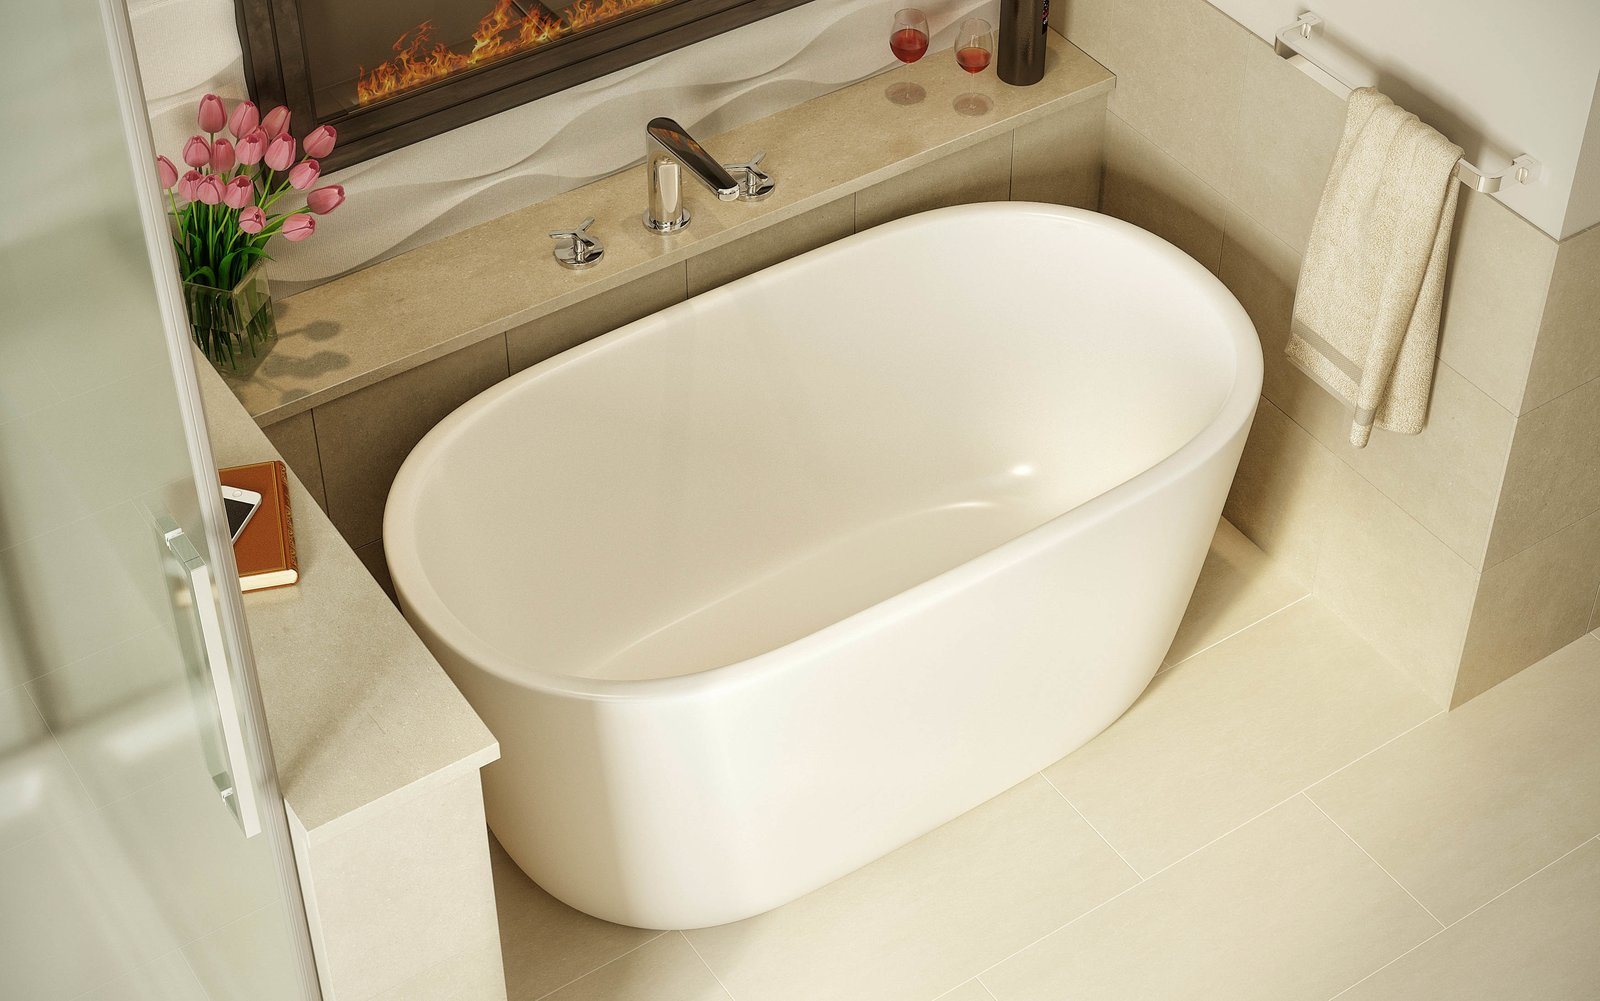 """Lullaby Nano is Aquatica's take on creating a petite deep bathtub that is ideal for a space conscious bathroom while providing that much loved modern freestanding design. Standing at just over 51"""" in length, this compact tub has an extra deep ergonomically designed interior to ensure you enjoy a full-body soak. Crafted from AquateX™ solid surface material, Lullaby Nano offers a velvety soft matte surface and superior heat-retention and durability.  Photo 2 of 6 in Five Petite Modern Freestanding Bathtubs from AquateX™ solid surface bathtubs"""